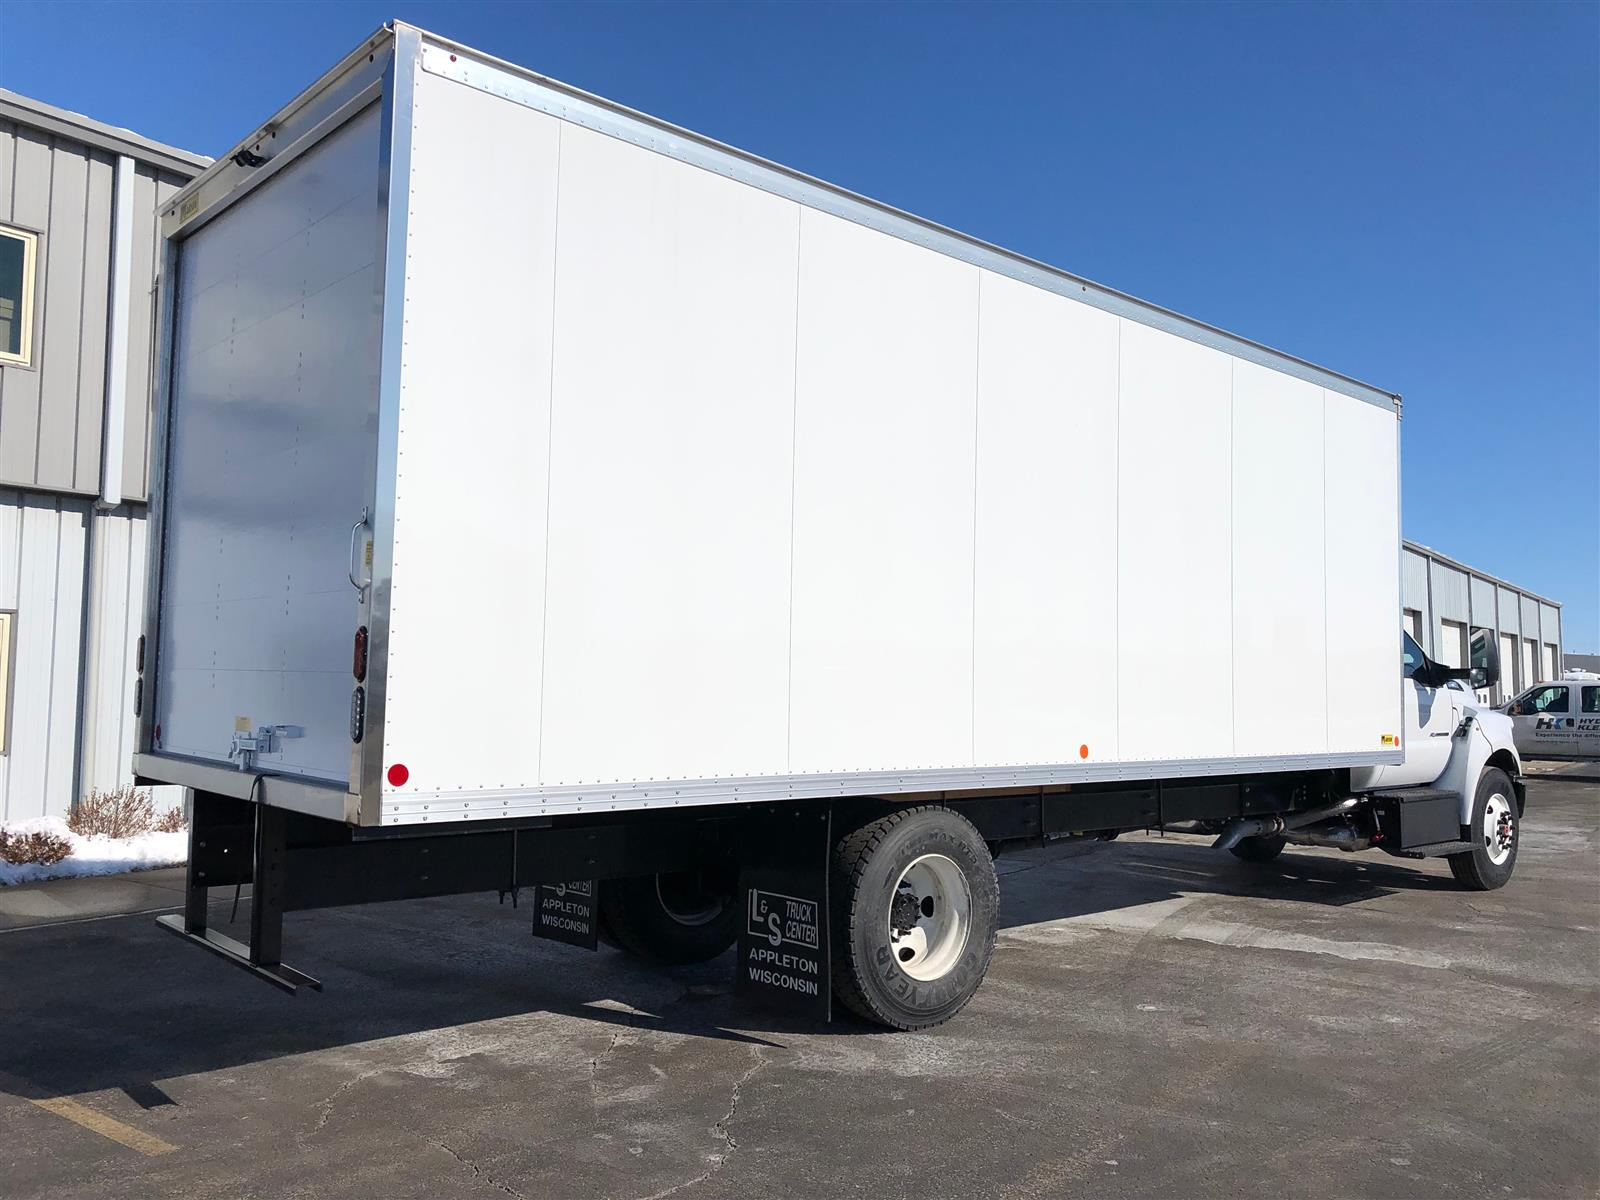 2021 Ford F-650 Regular Cab DRW RWD, Marion Body Works Dry Freight #3614 - photo 1